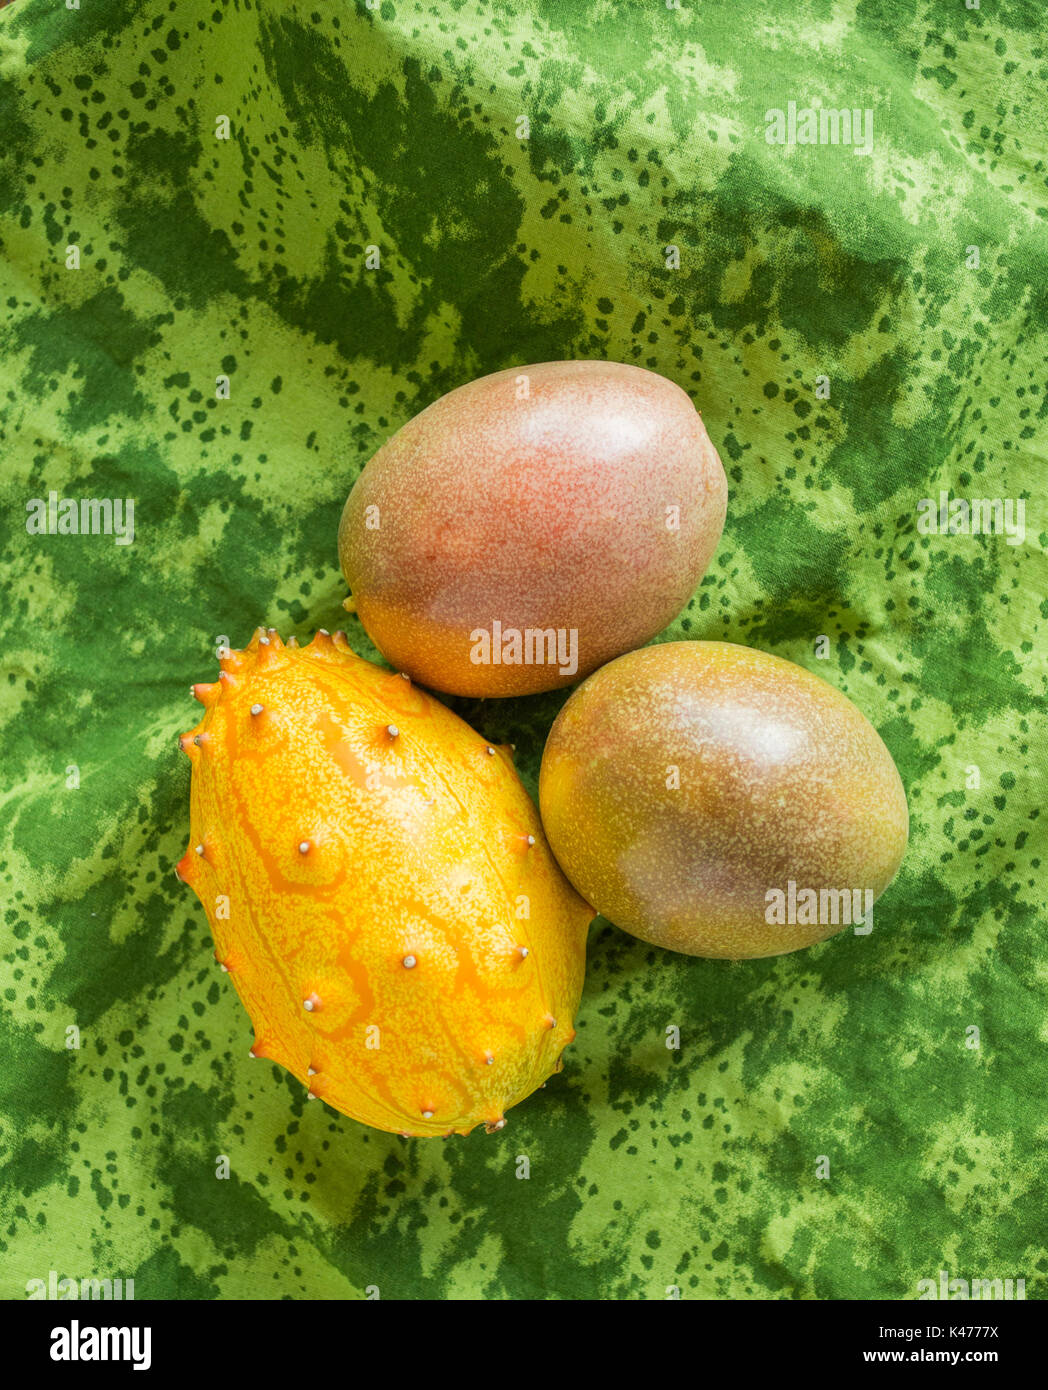 passion fruit and kiwano melon isolated on a green cloth viewed from above - Stock Image